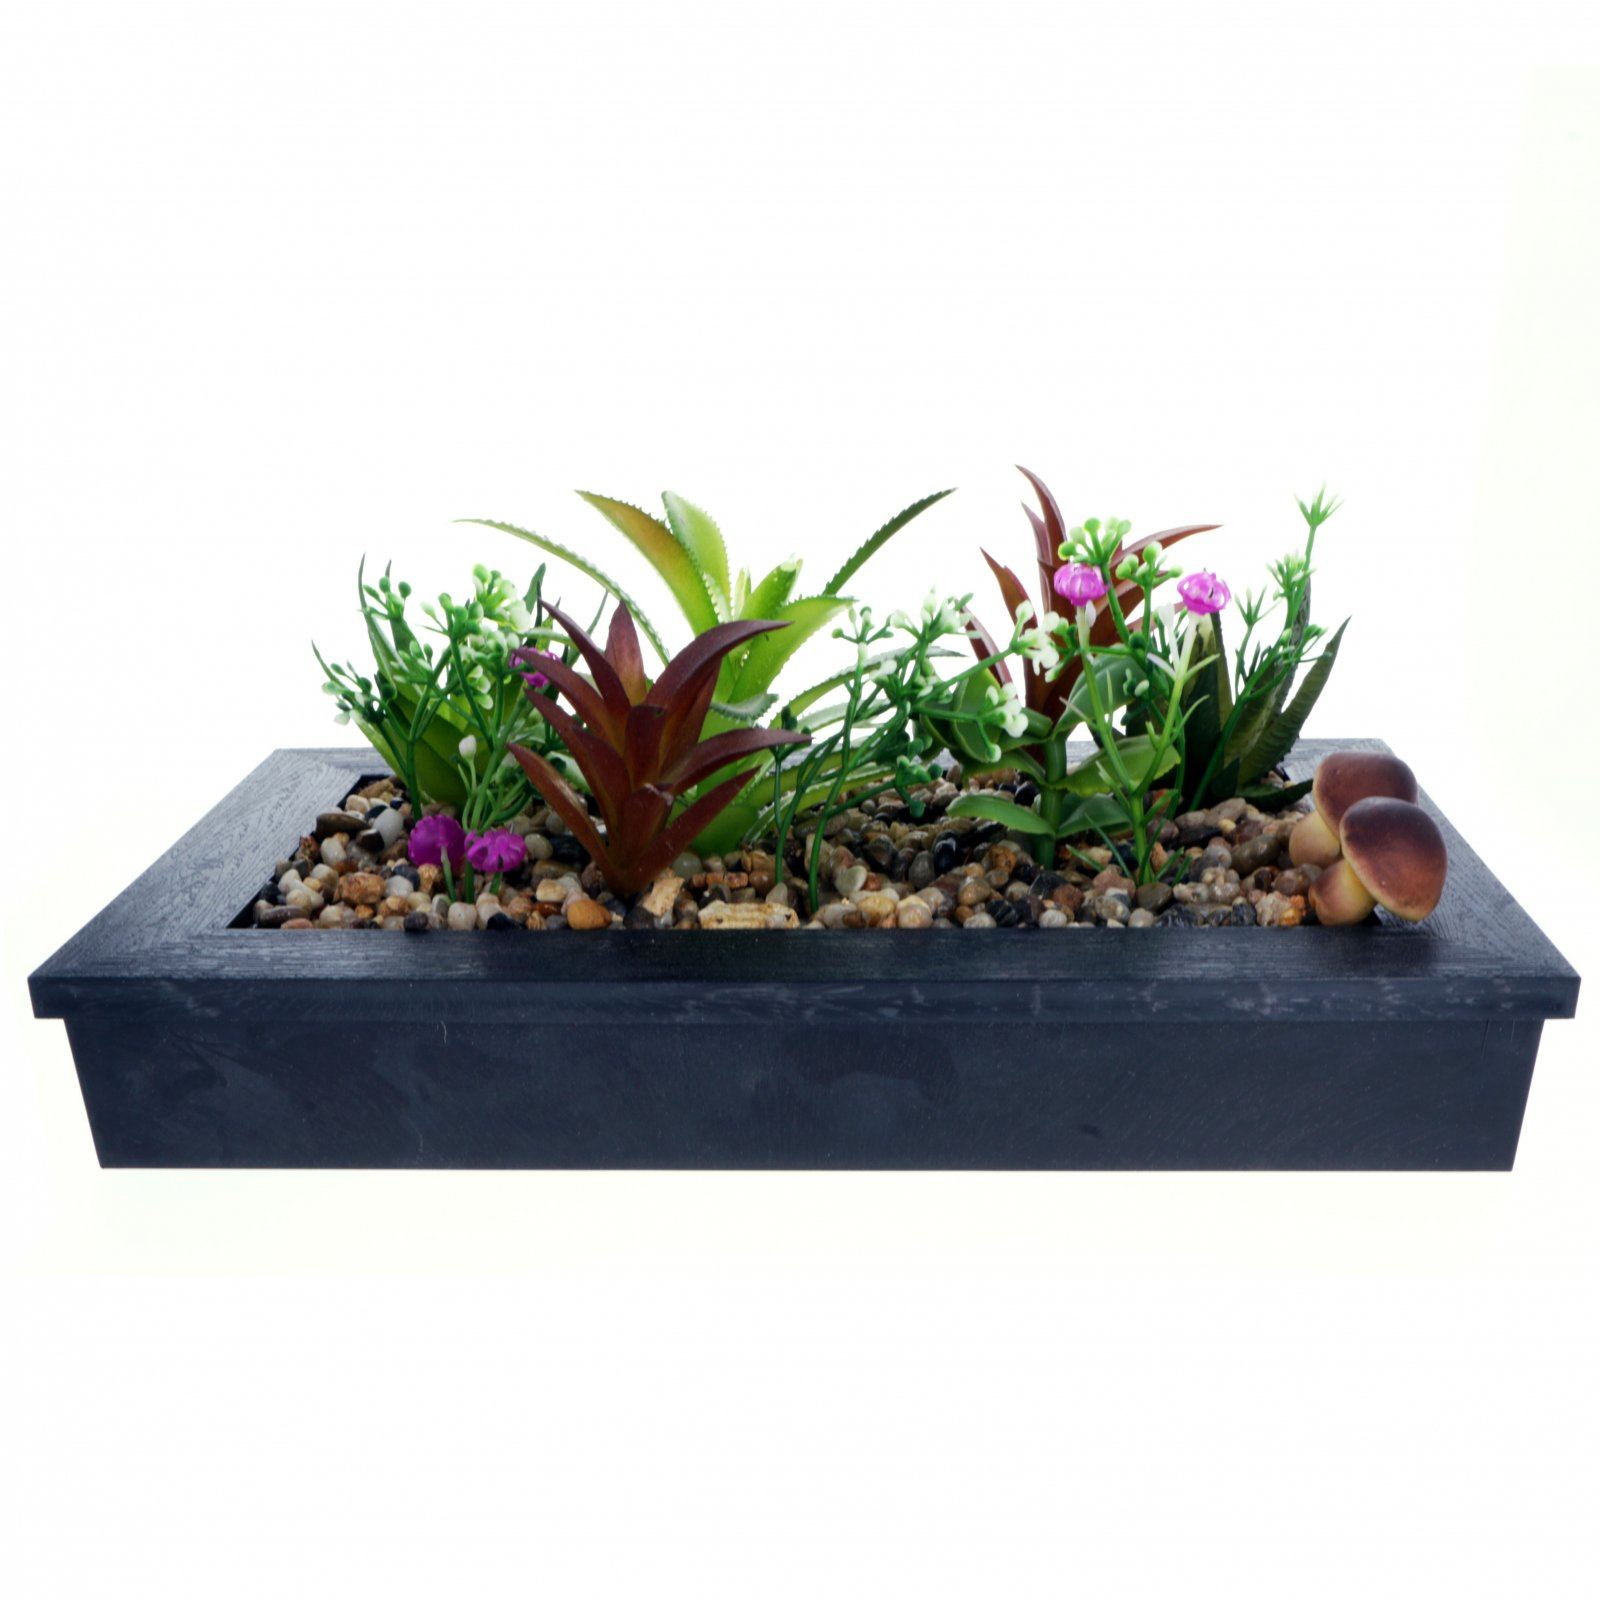 Home Essentials Decor Artificial Plant Succulent Garden In Planter - Black